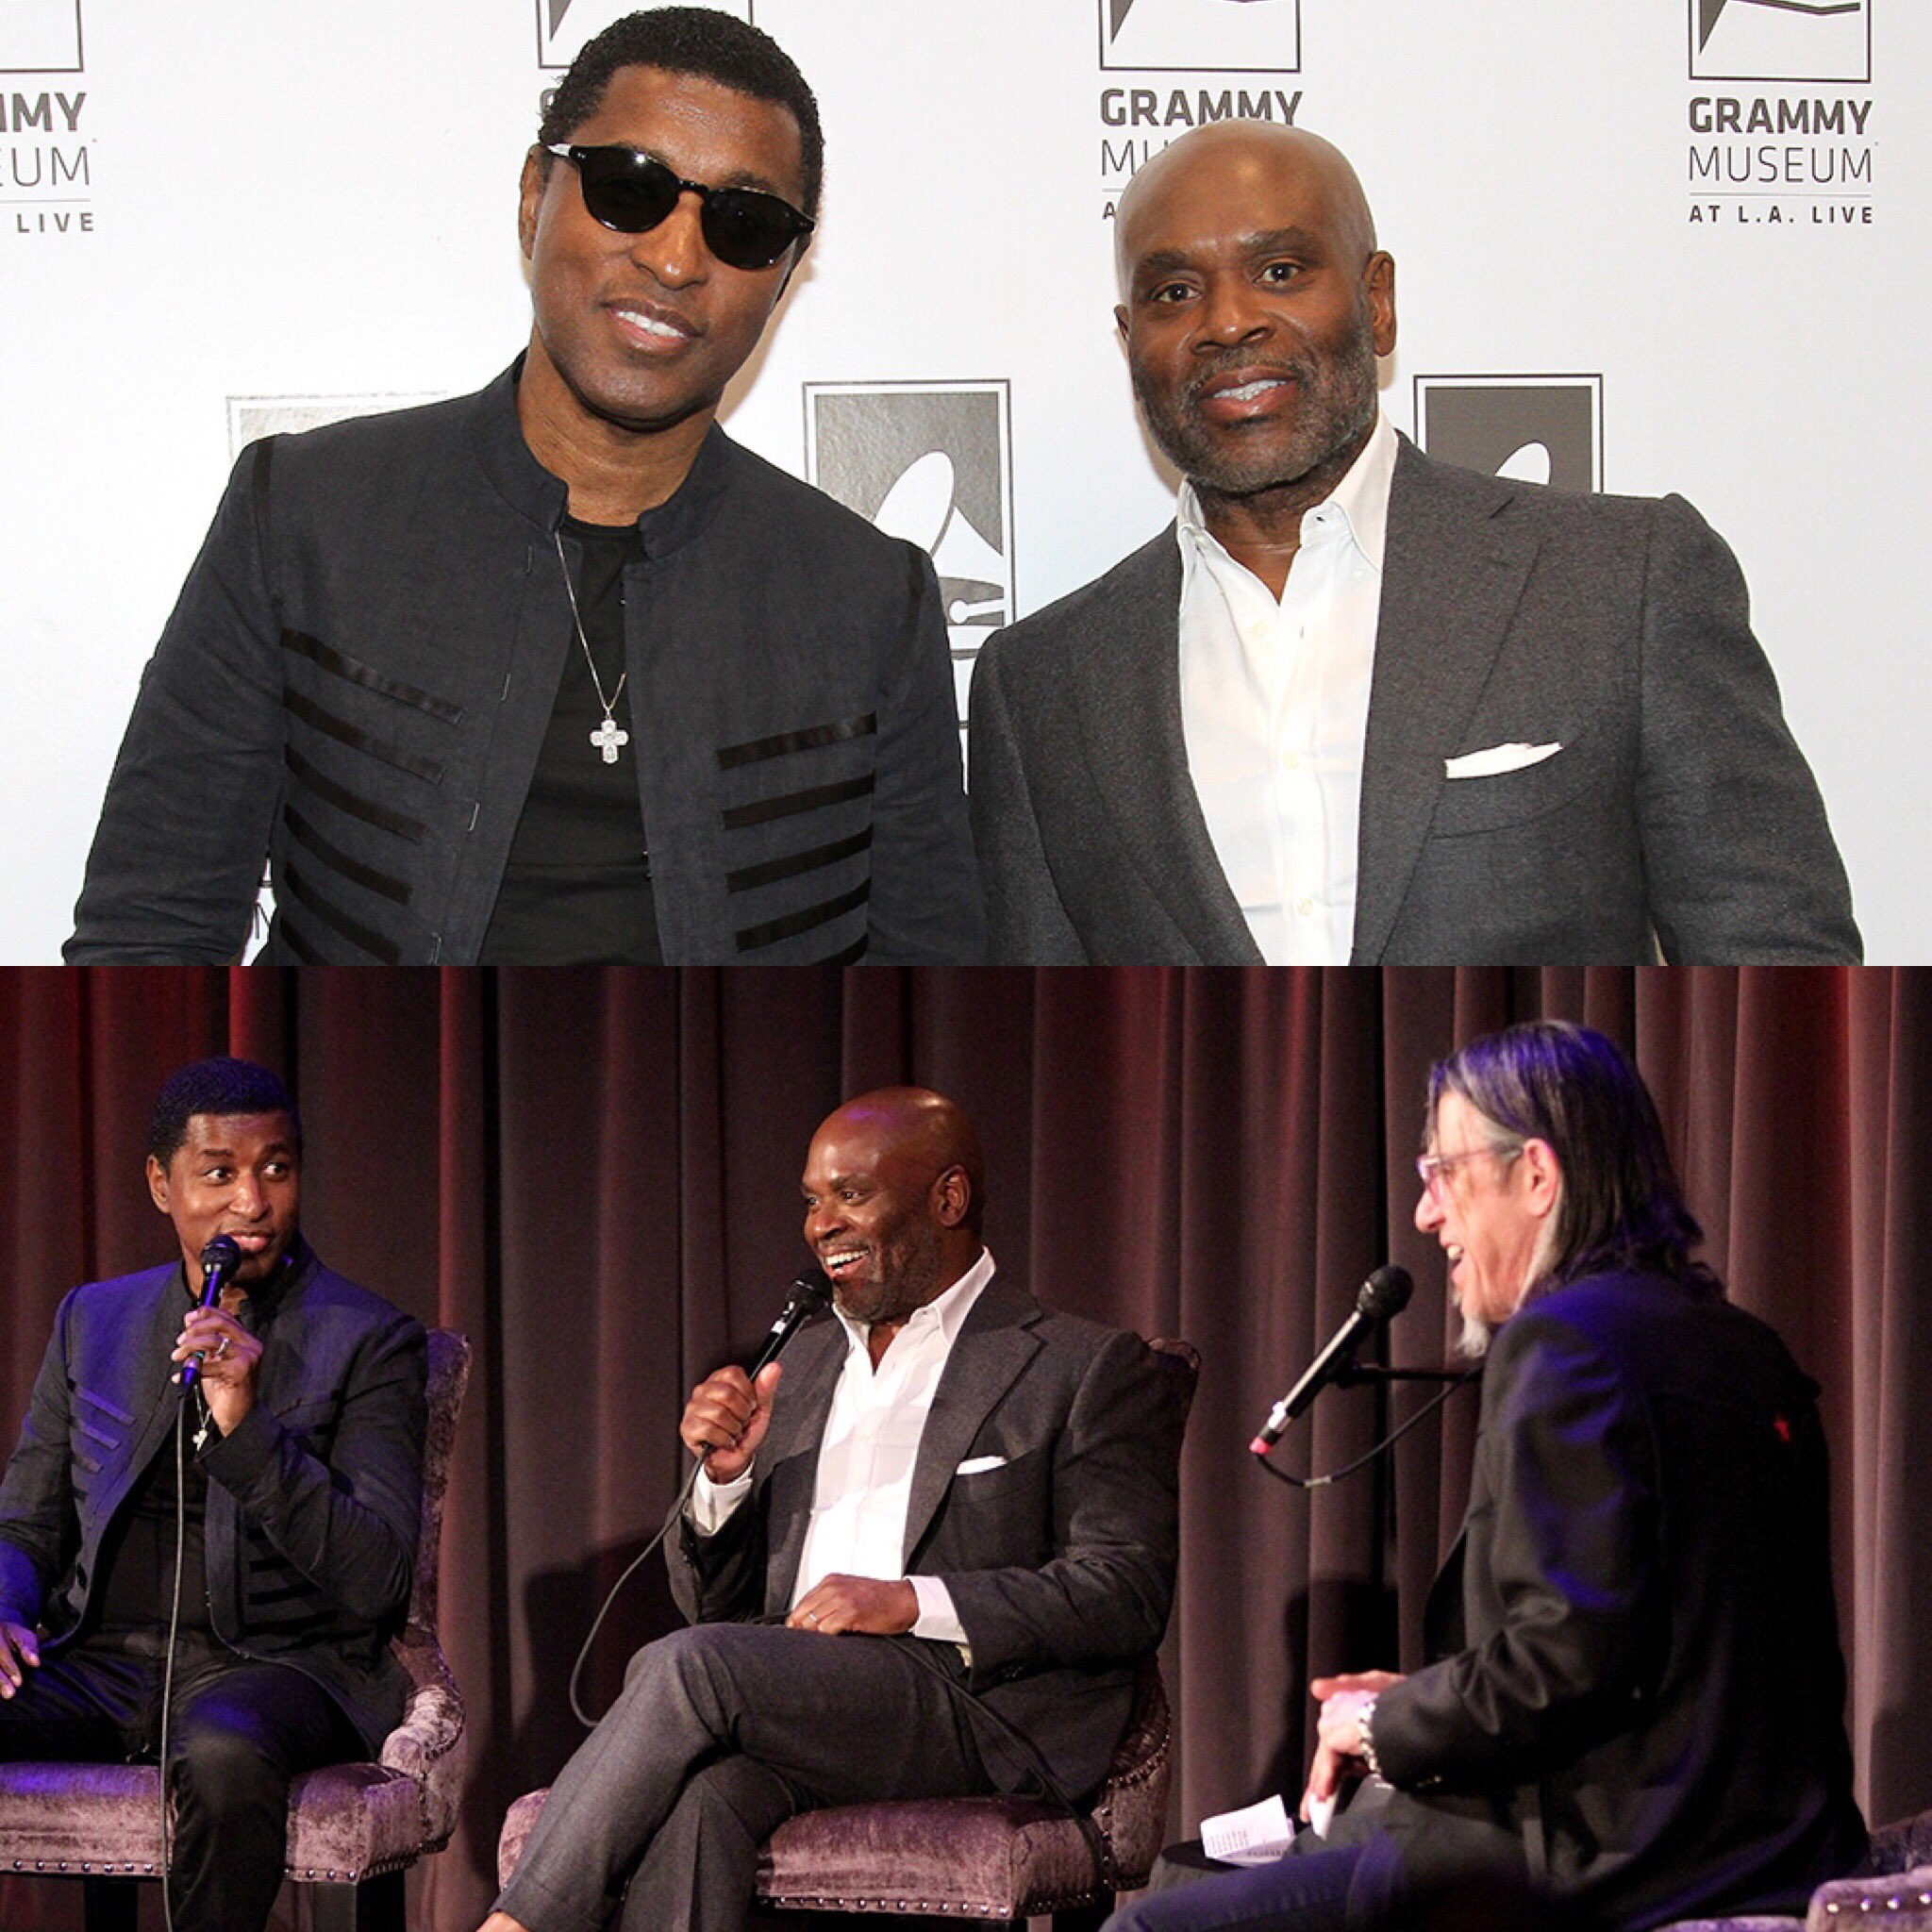 The Tender Lover himself @KennyEdmonds and I sharing stories. #SingToMe https://t.co/W9OkHCcpEr